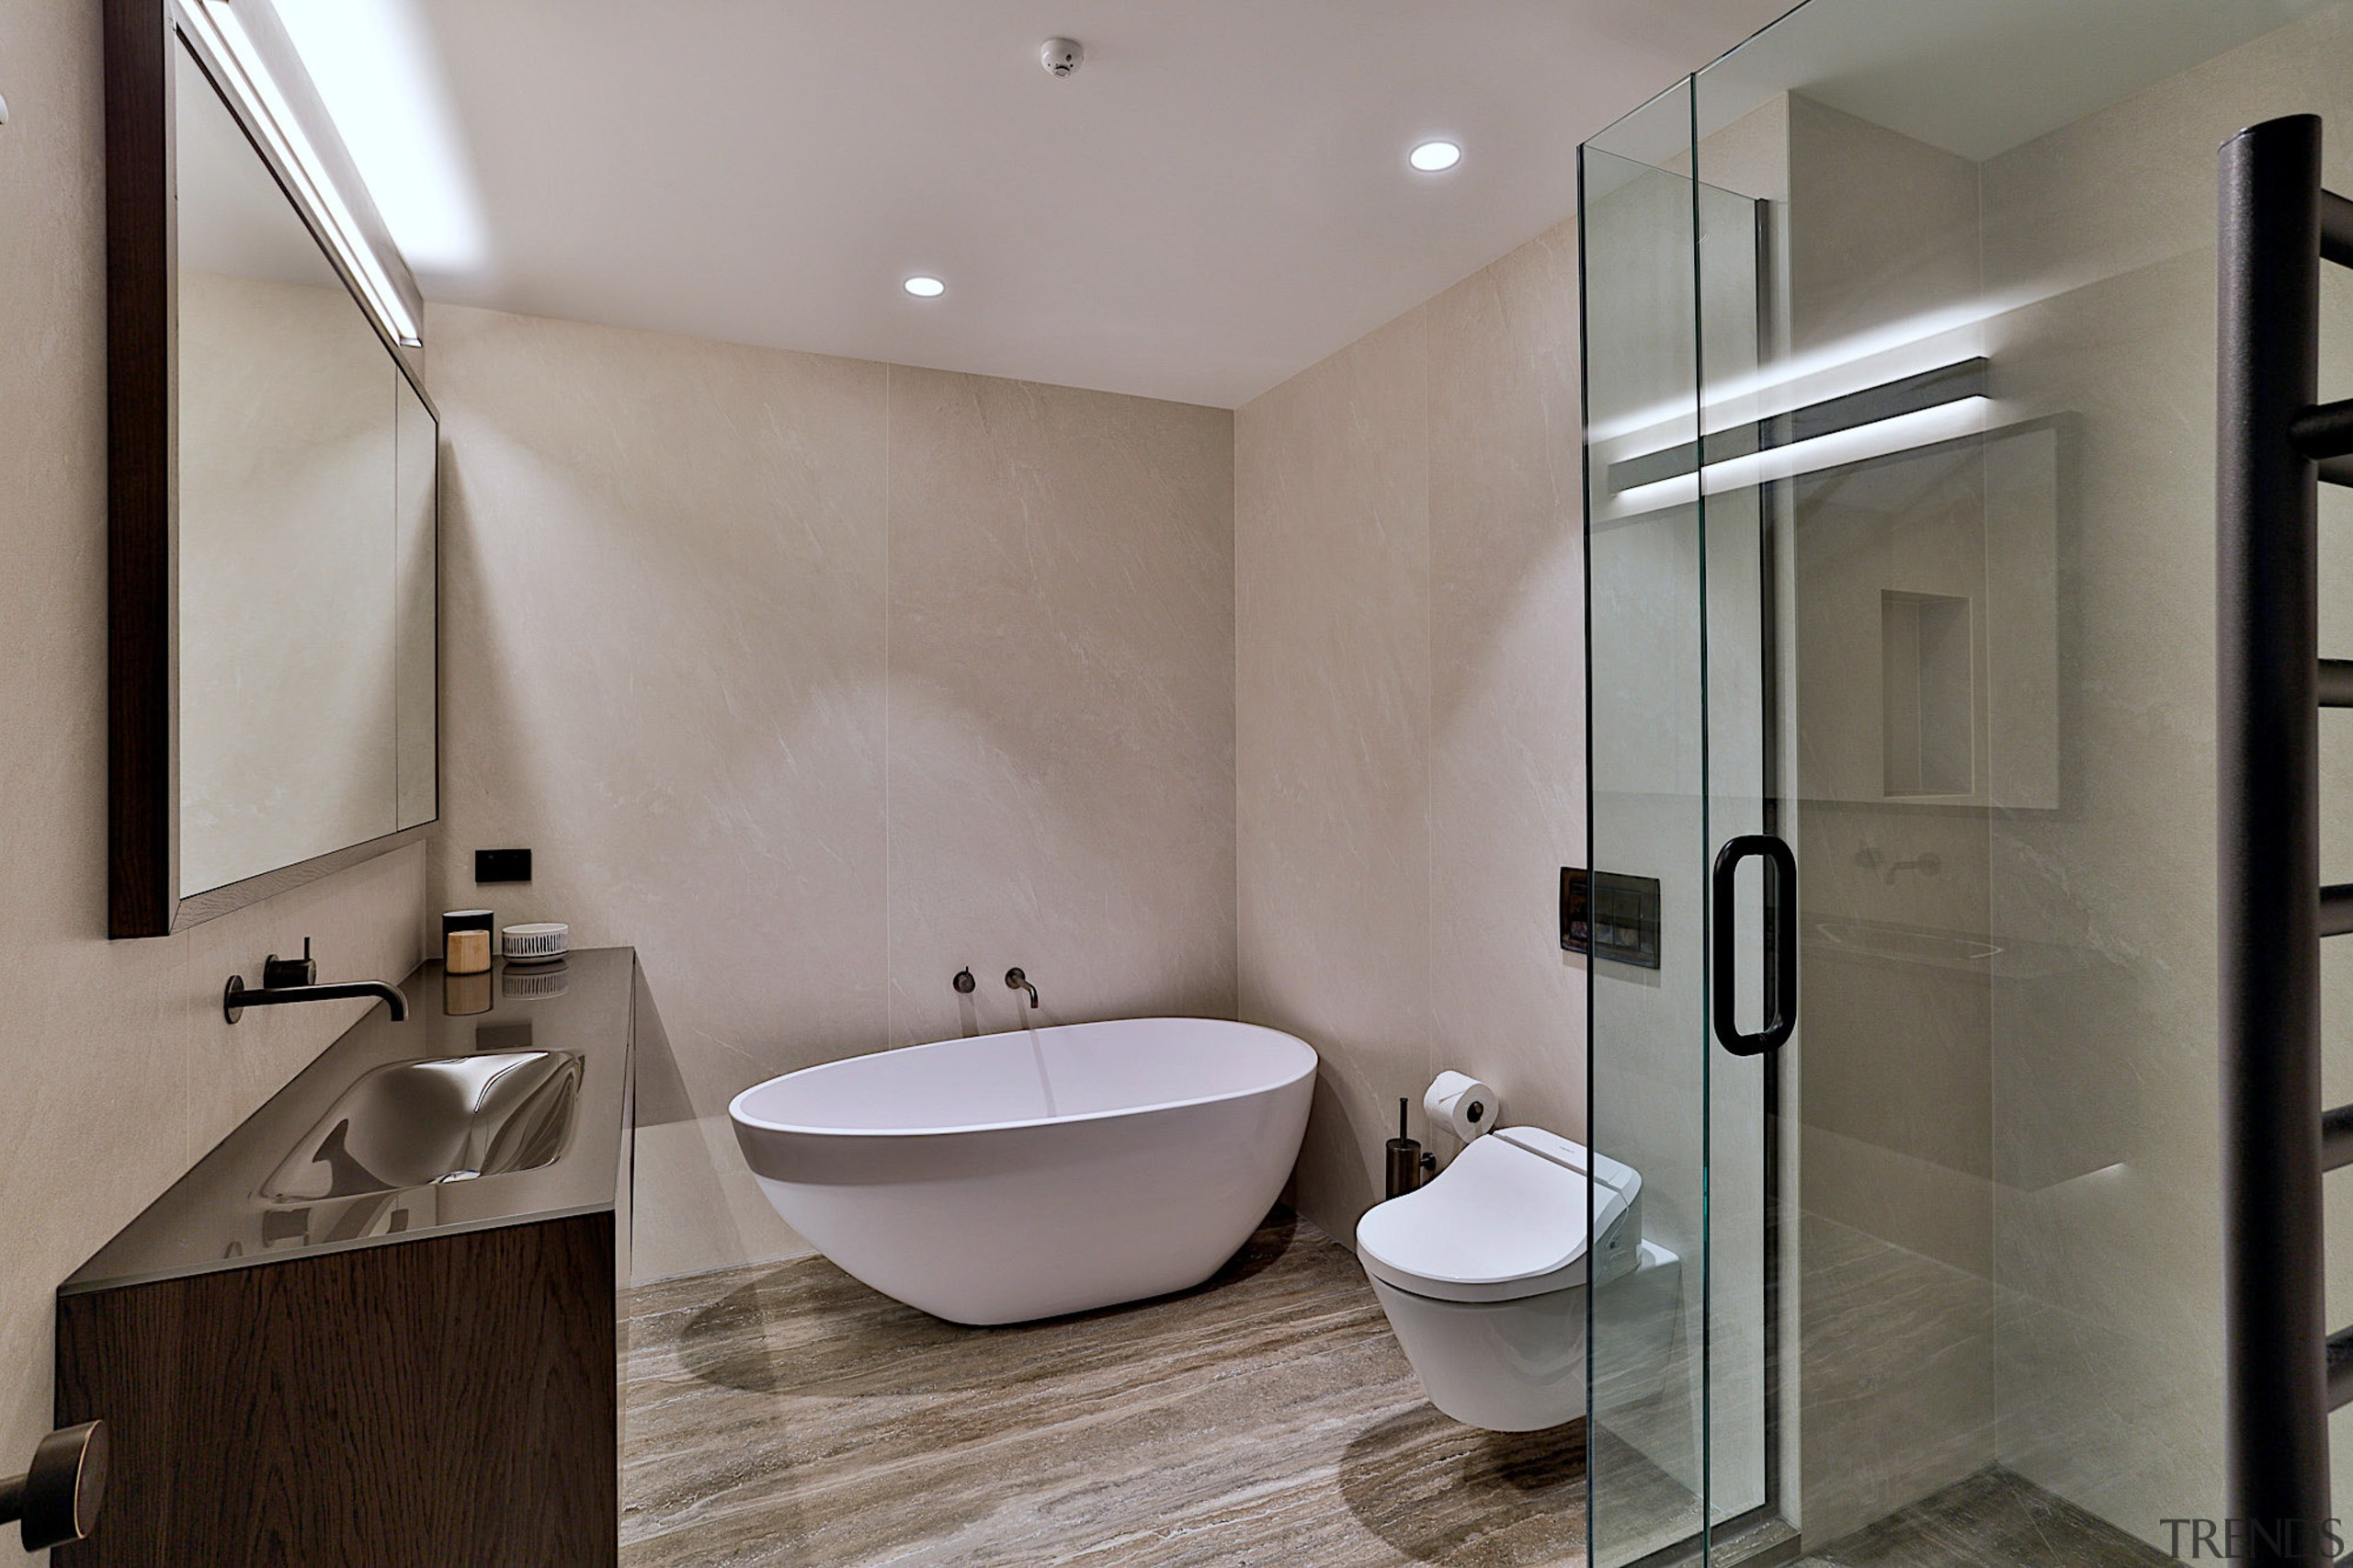 For this bathroom, the owner wanted a complete